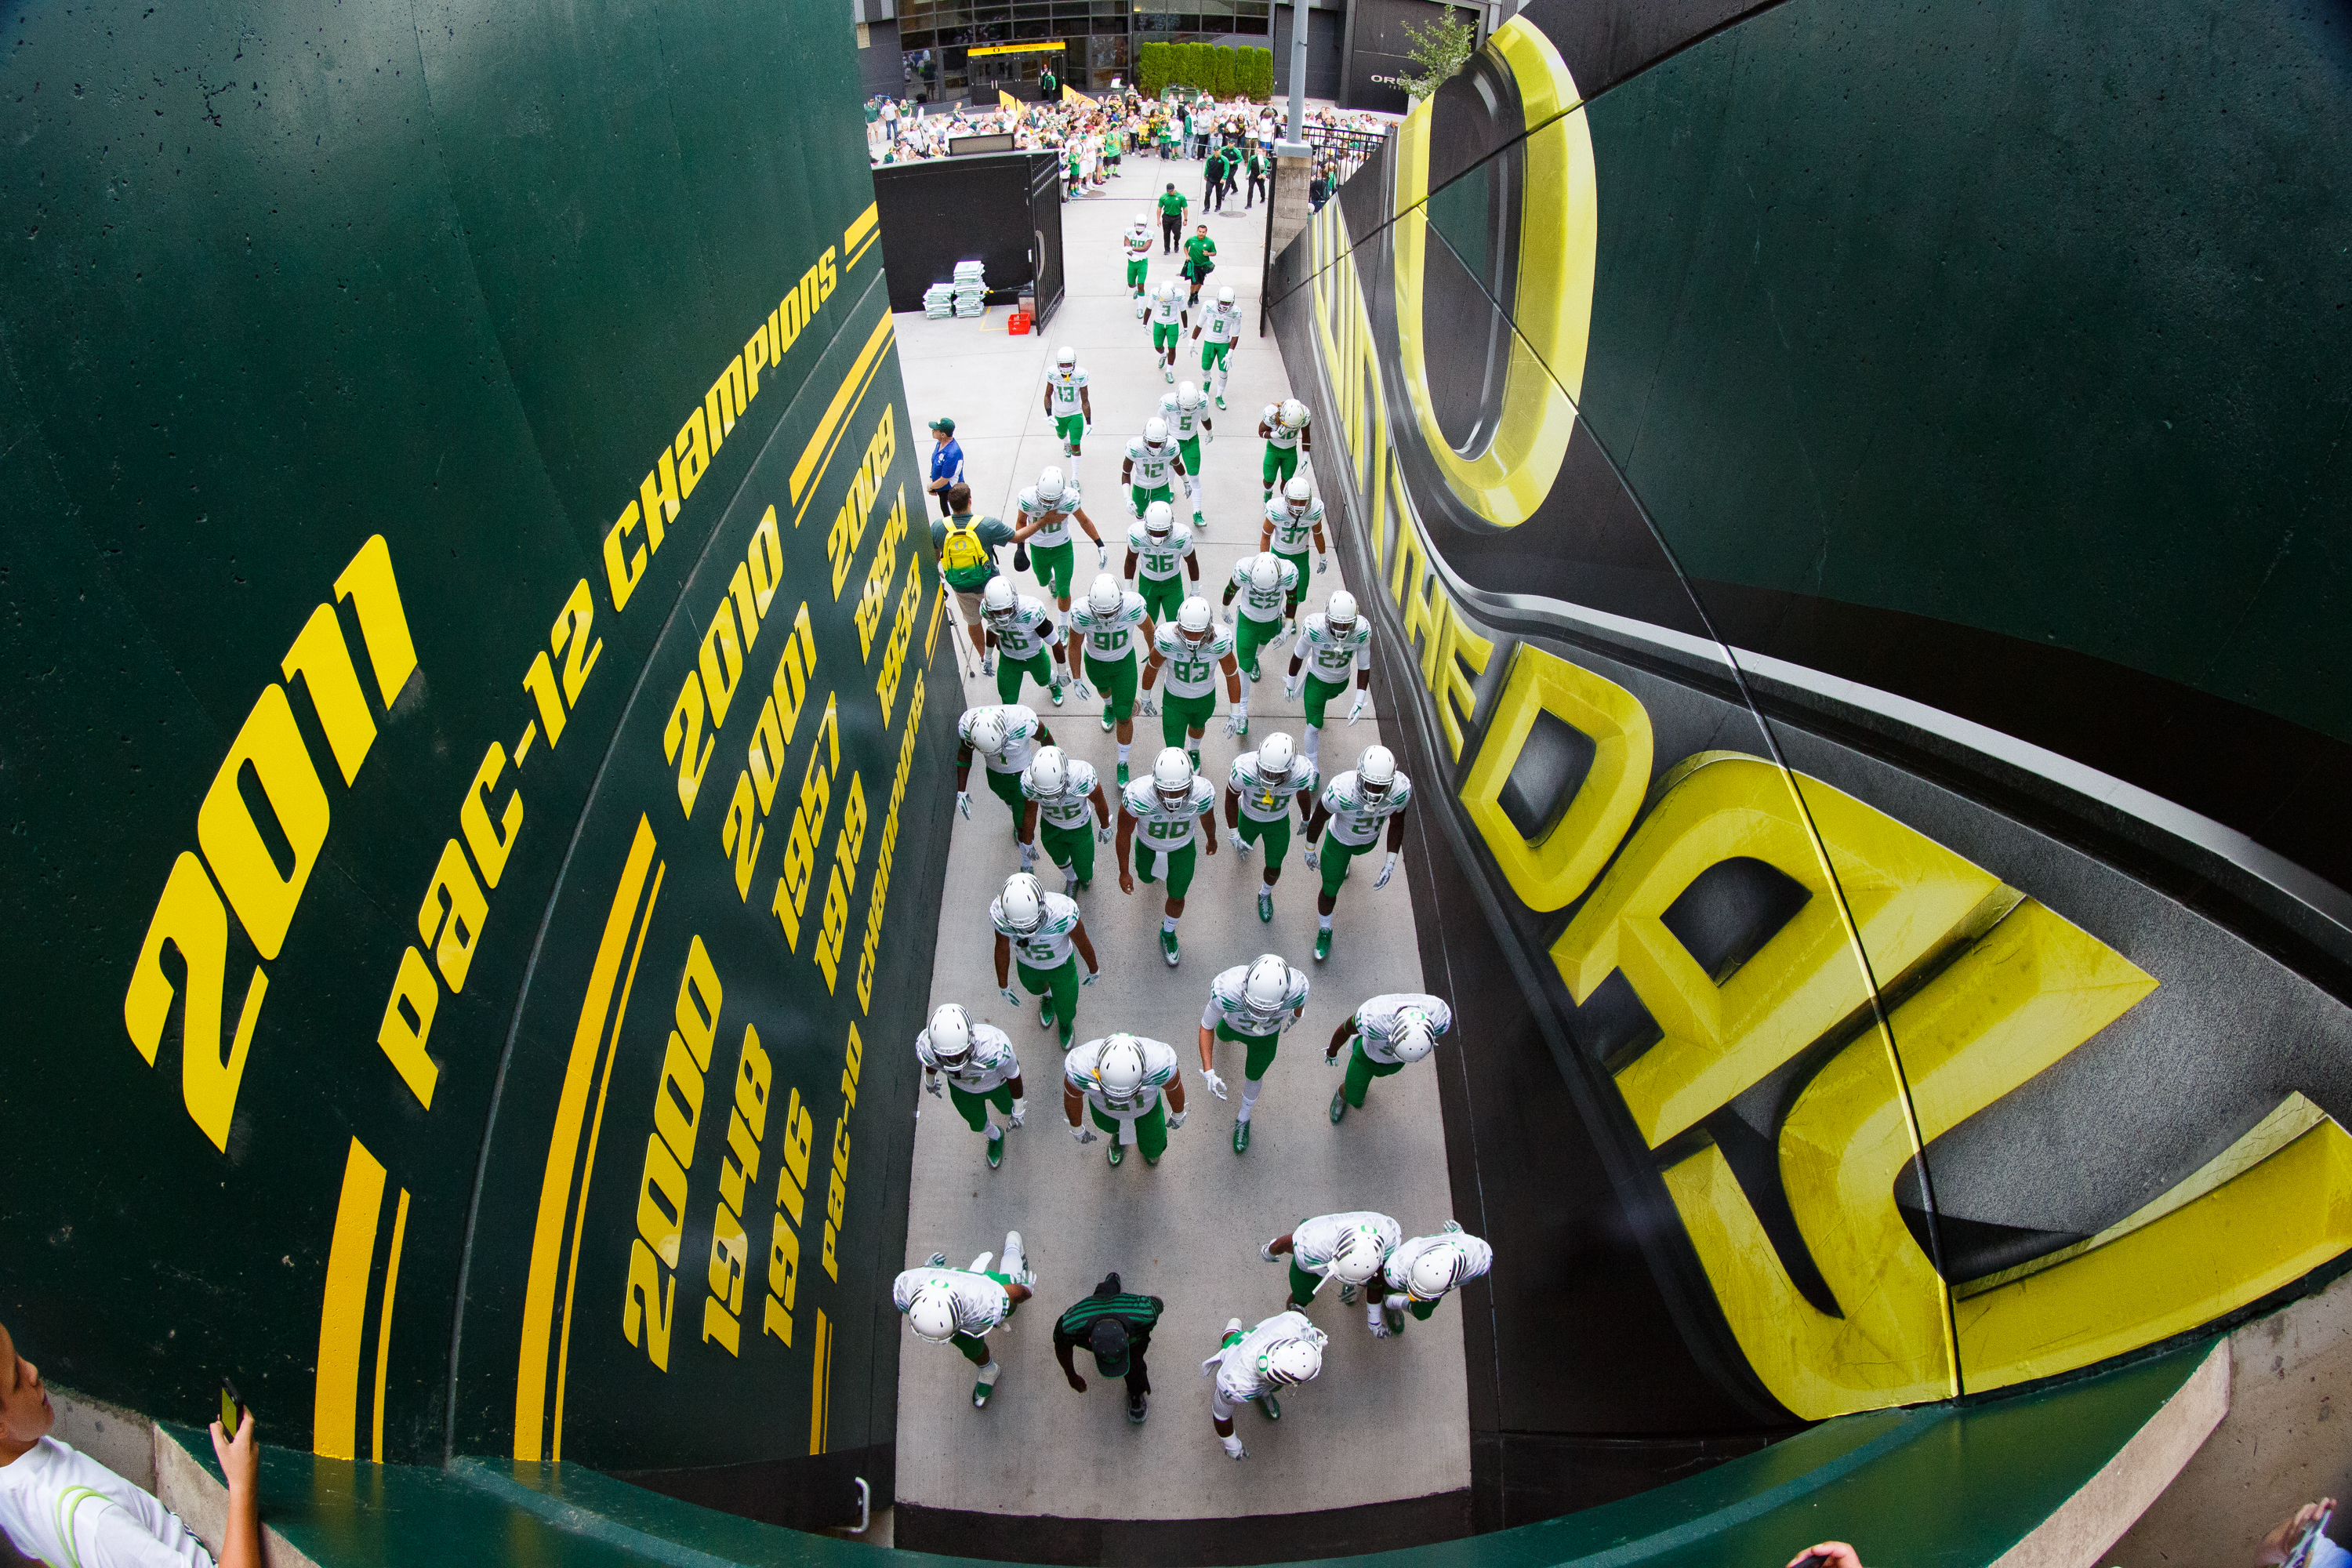 The Oregon football team walks through a tunnel before an NCAA college football game against South Dakota in Eugene, Ore., Saturday, Aug. 30, 2014. (AP Photo/Ryan Kang)